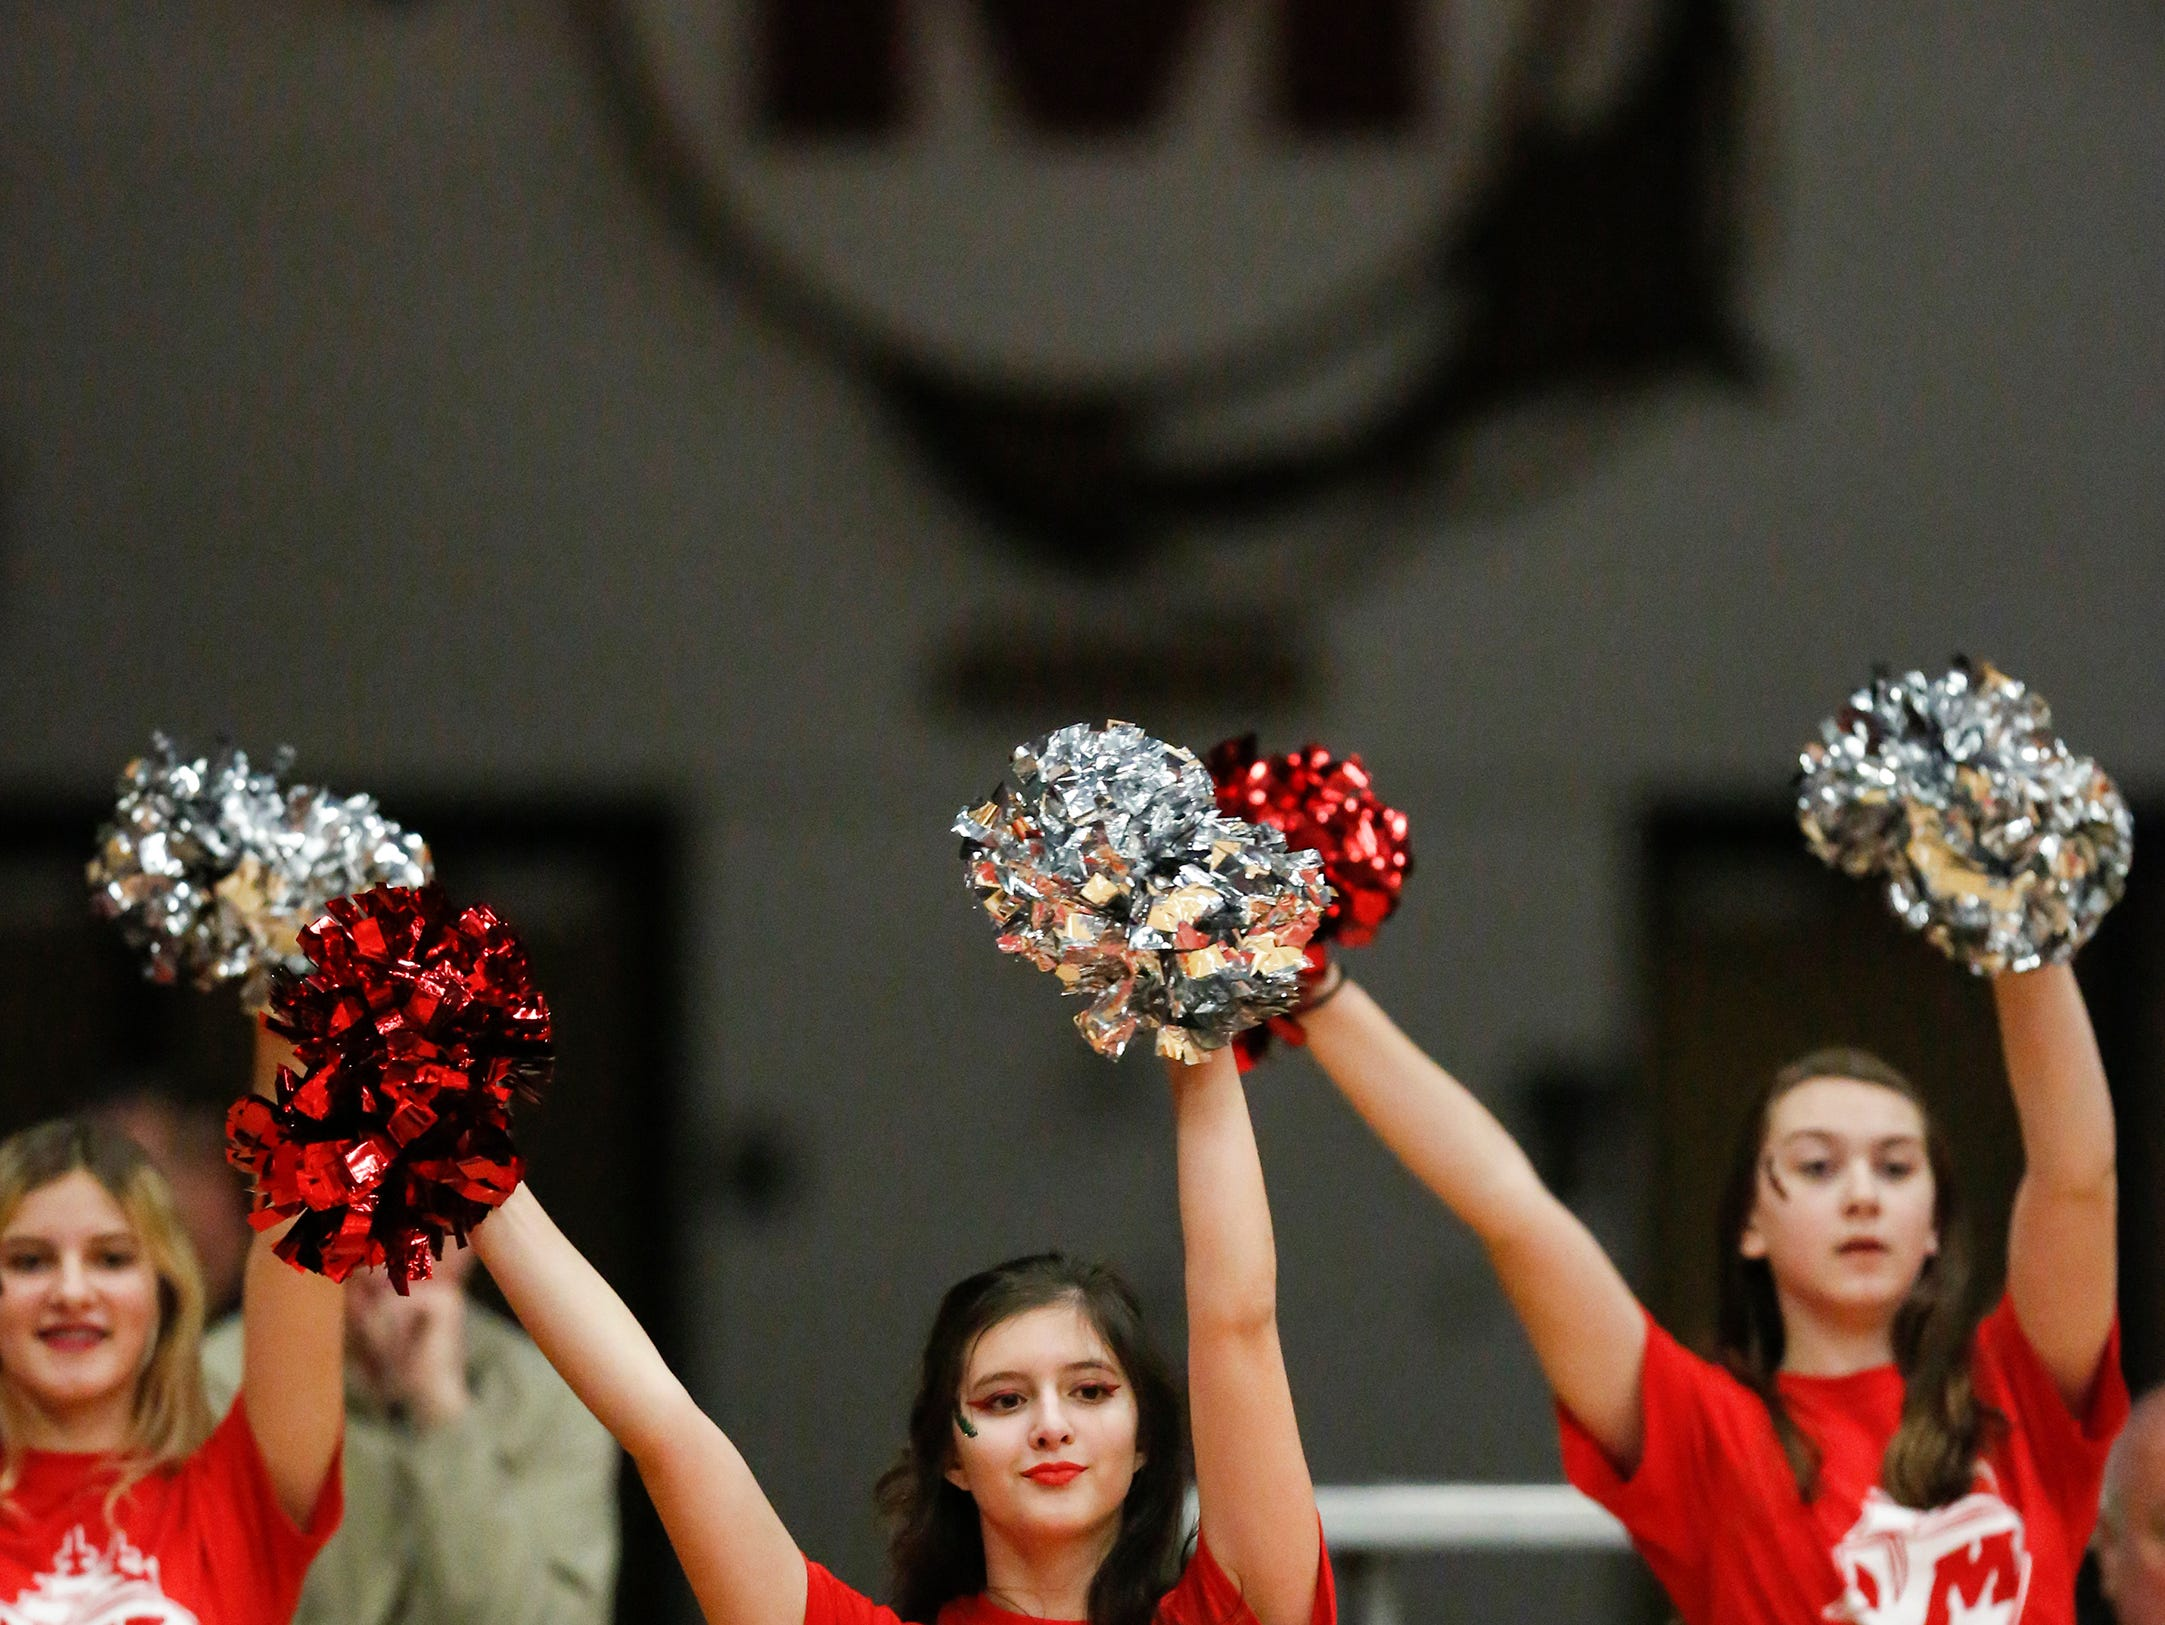 Manitowoc Lincoln's dance team performs before the Ships' game against Green Bay Preble at Manitowoc Lincoln High School Friday, December 21, 2018, in Manitowoc, Wis. Joshua Clark/USA TODAY NETWORK-Wisconsin